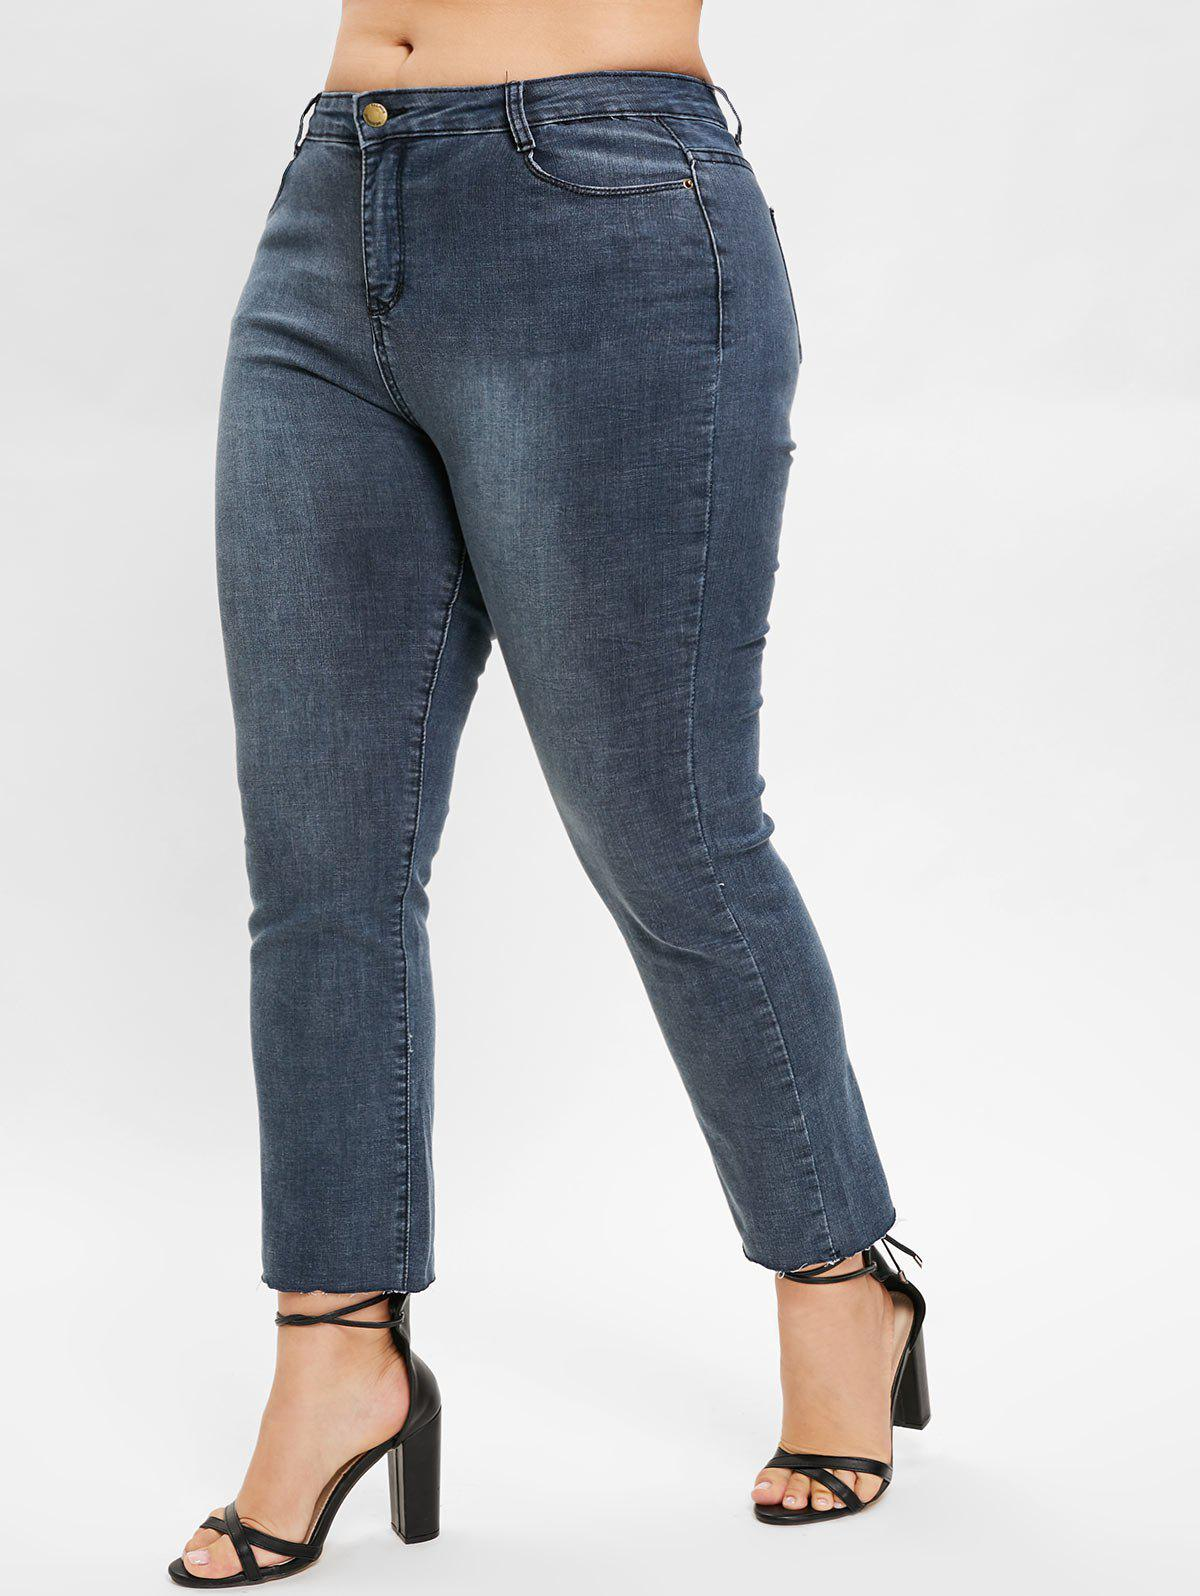 Store Plus Size Plain Jeans with Zipper Fly